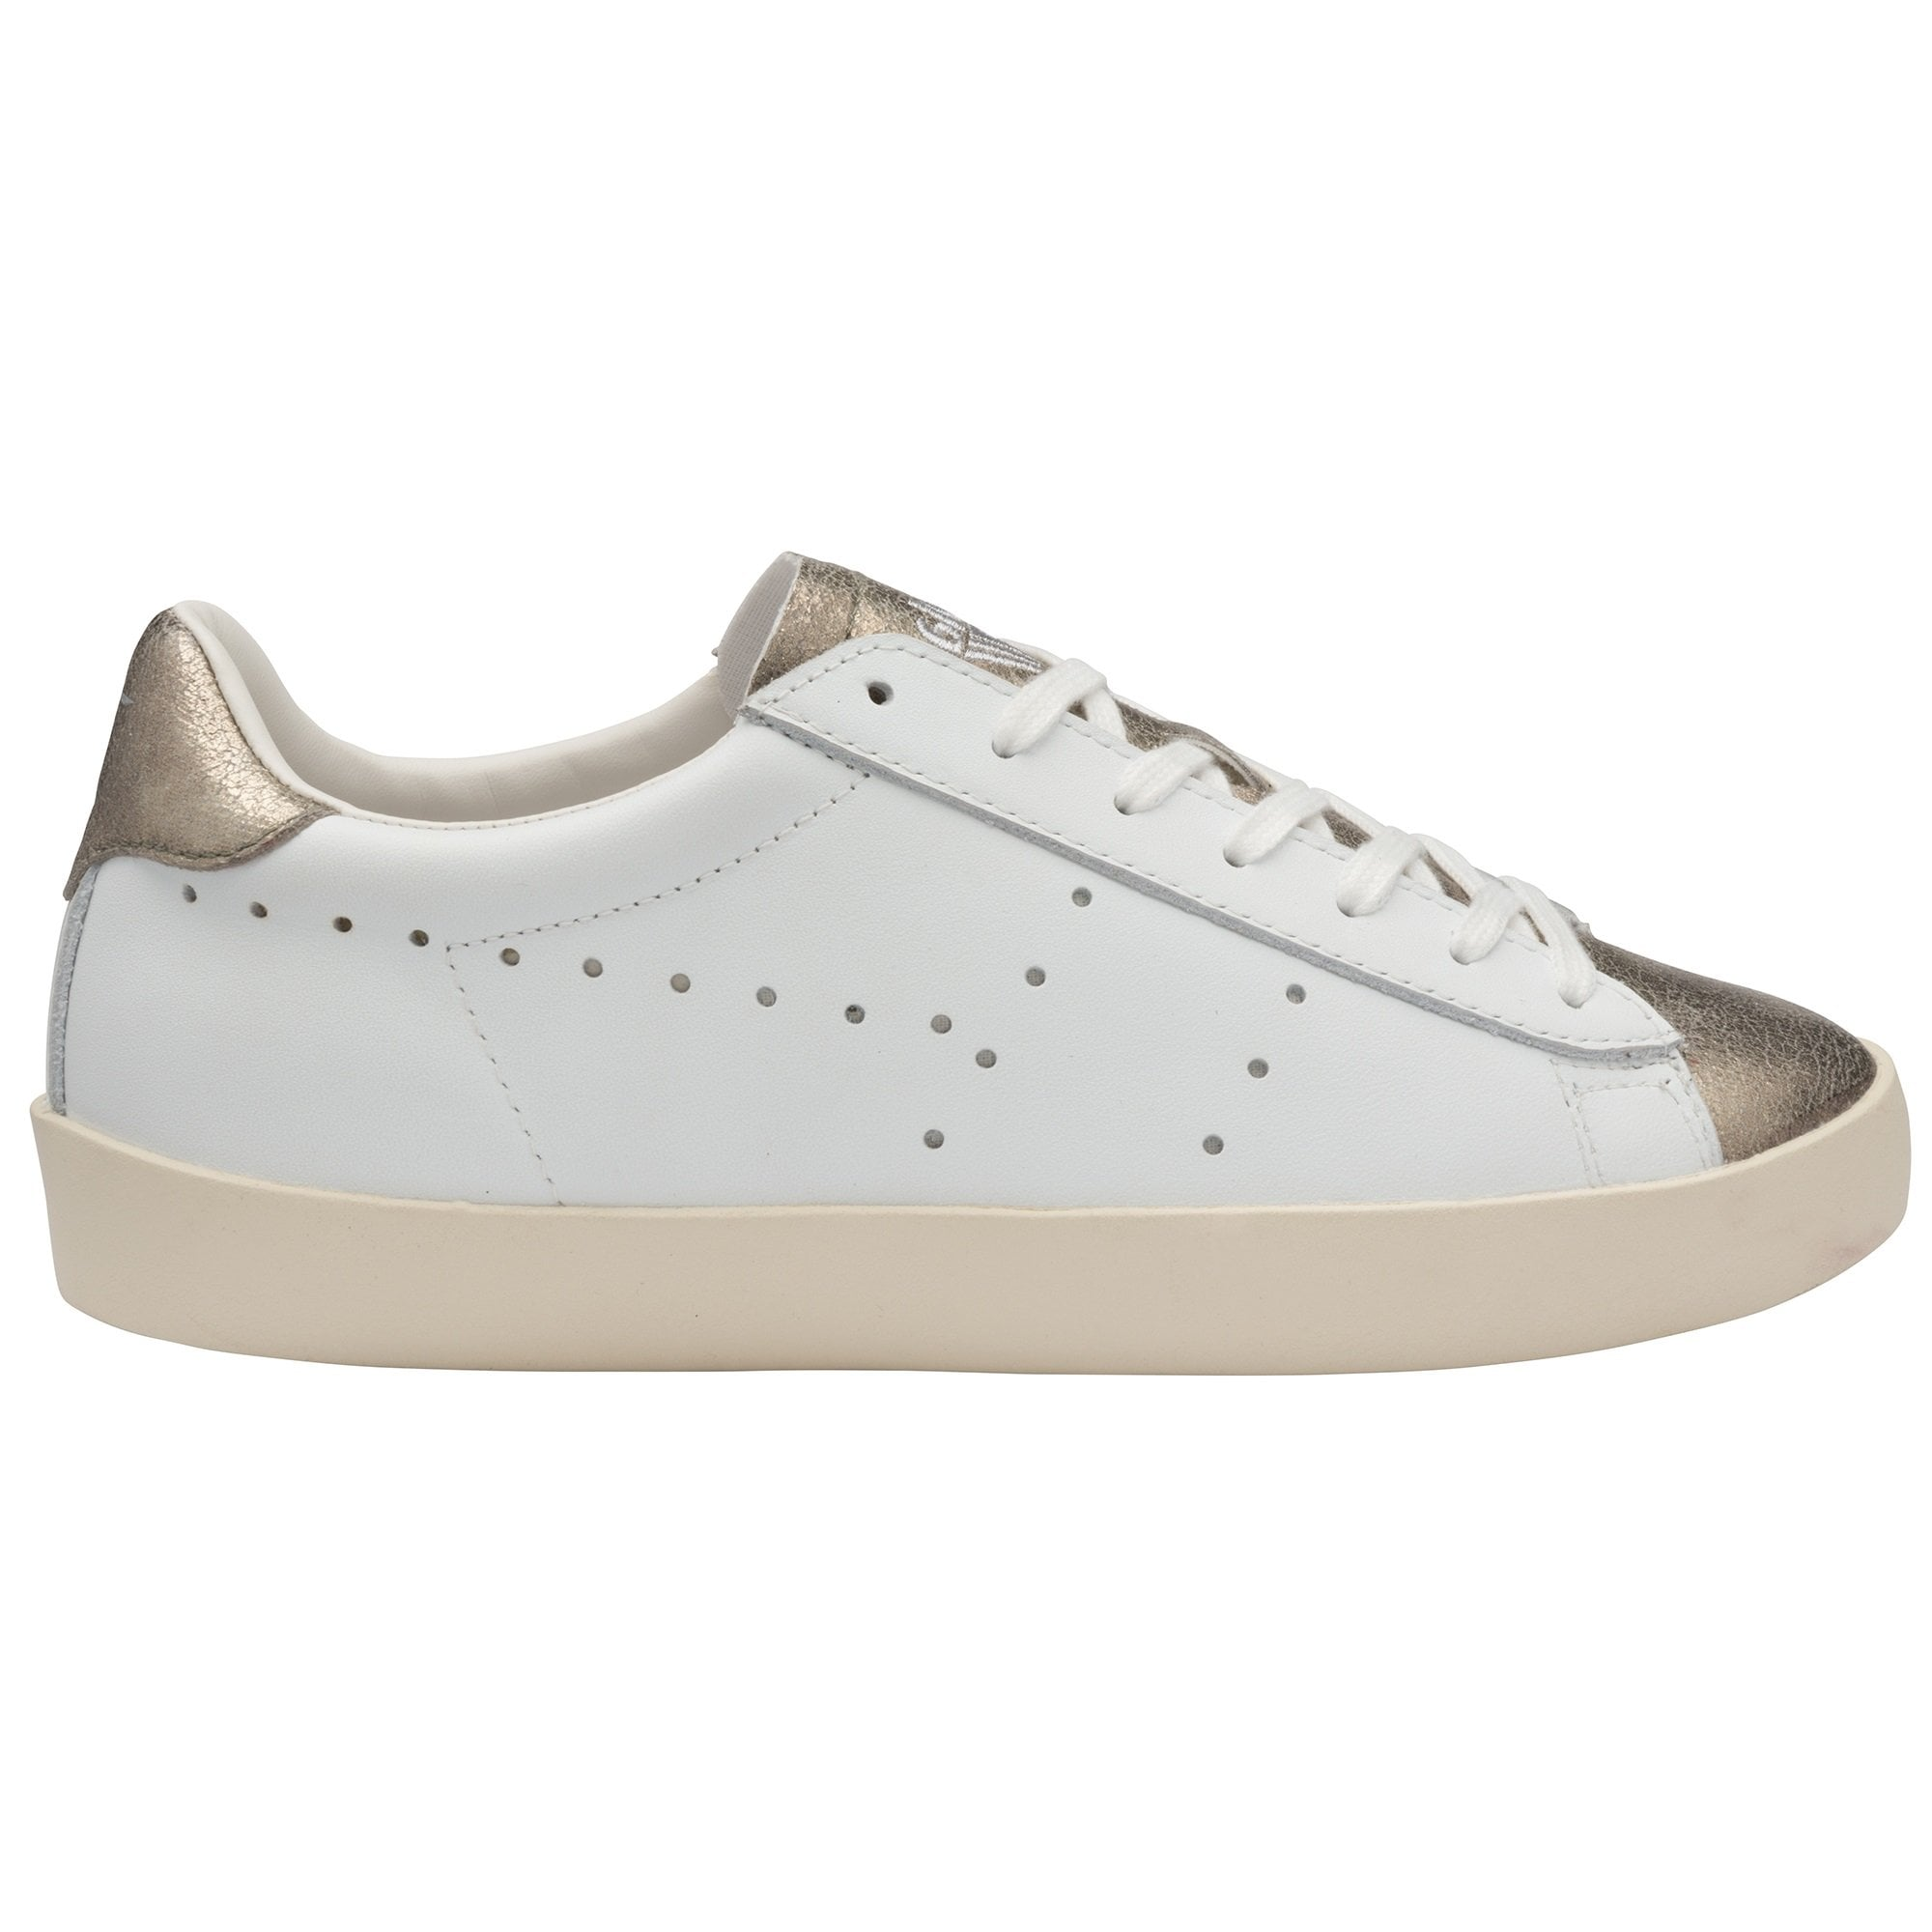 Nova Metallic Leather Sneaker